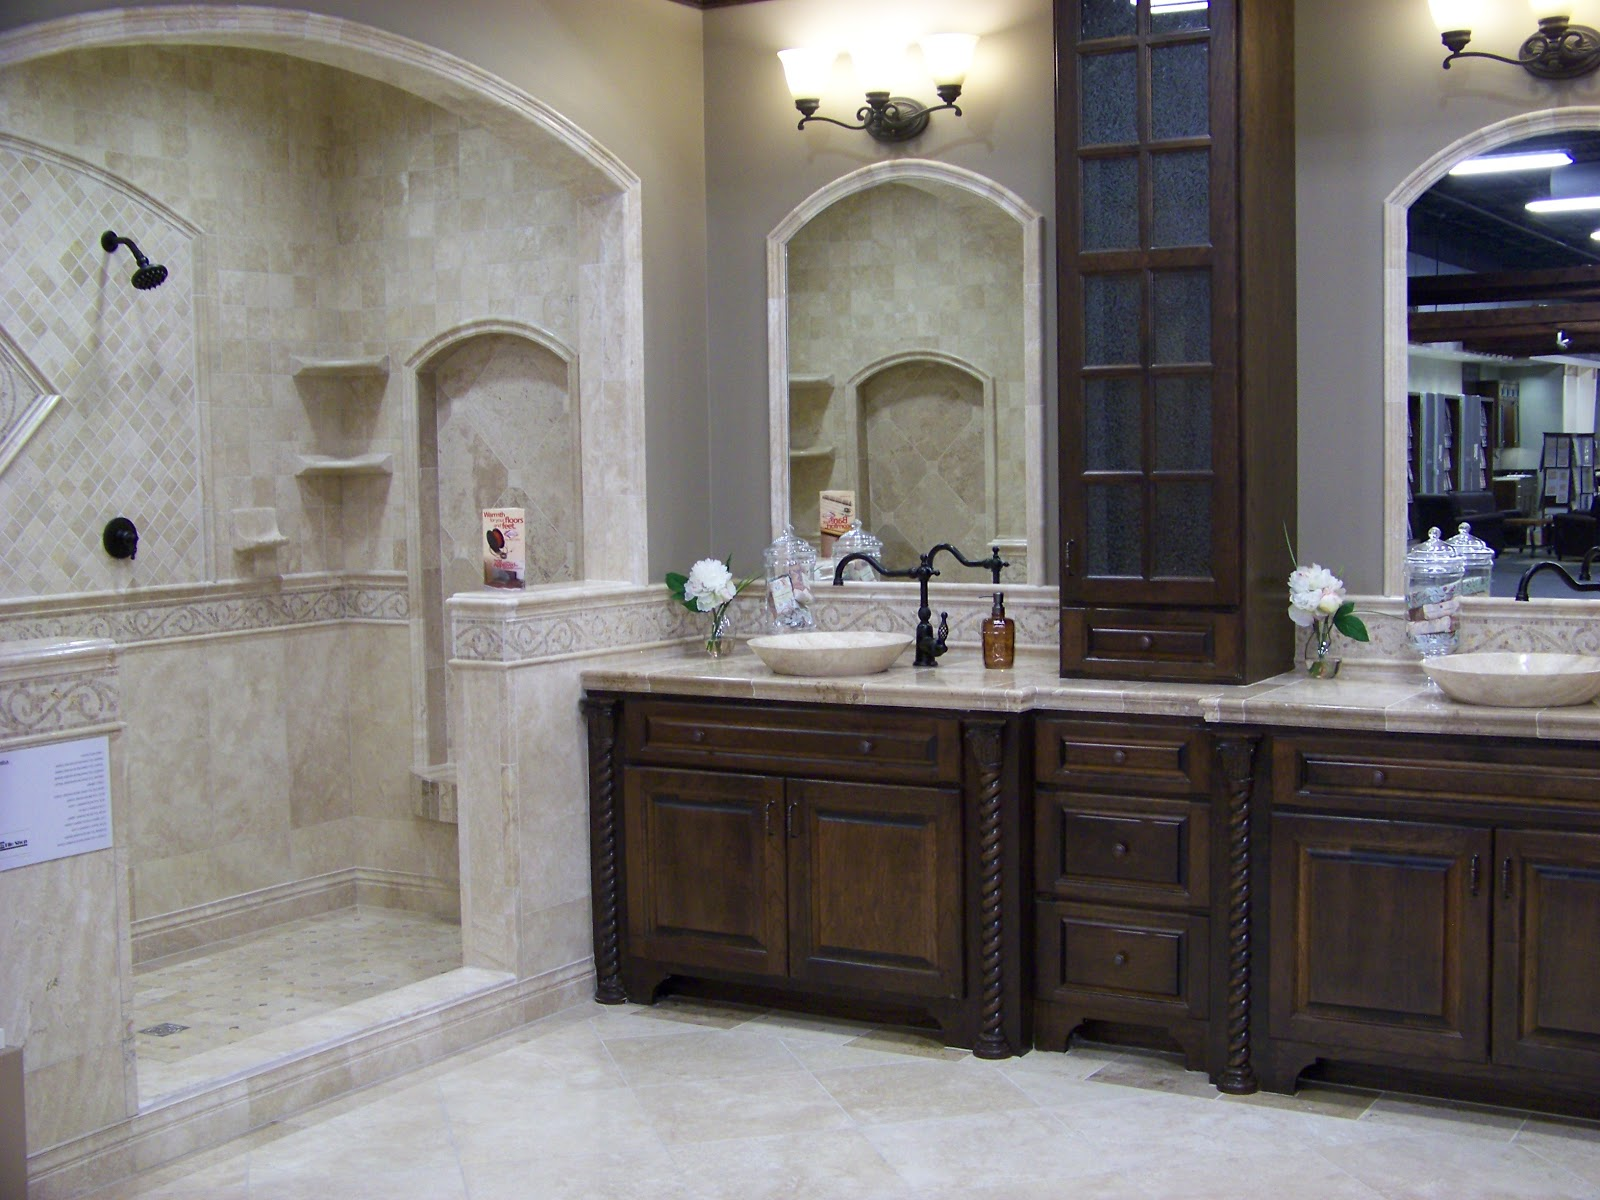 Home decor budgetista bathroom inspiration the tile shop for Tile shower bathroom ideas